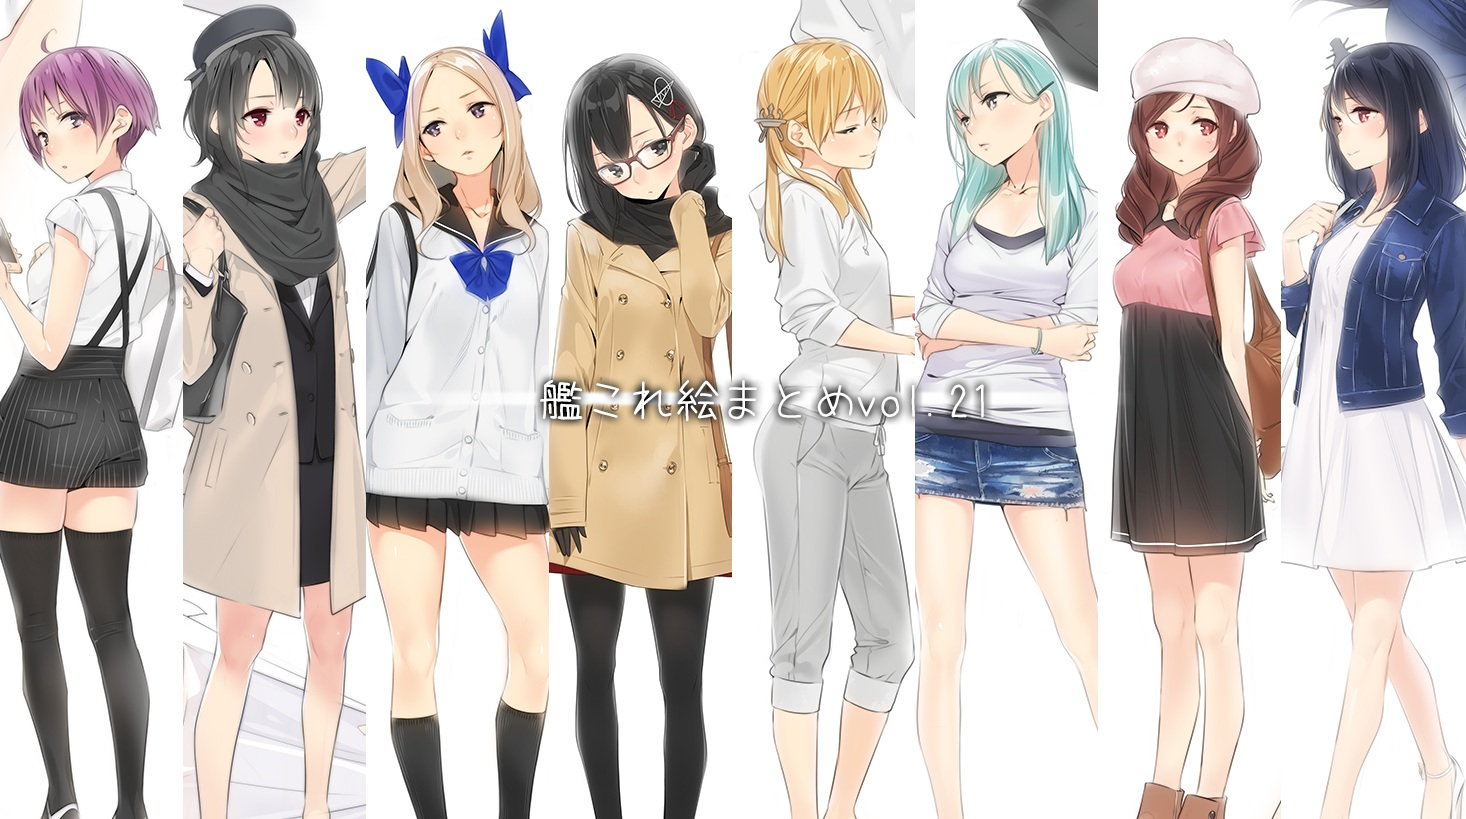 ama_mitsuki anthropomorphism aqua_hair asakaze_(kancolle) black_eyes black_hair blonde_hair braids brown_hair dress glasses haguro_(kancolle) harukaze_(kancolle) hat kantai_collection kneehighs long_hair pantyhose phone prinz_eugen_(kancolle) purple_hair red_eyes sakawa_(kancolle) seifuku short_hair skirt suzuya_(kancolle) takao_(kancolle) thighhighs yamashiro_(kancolle)